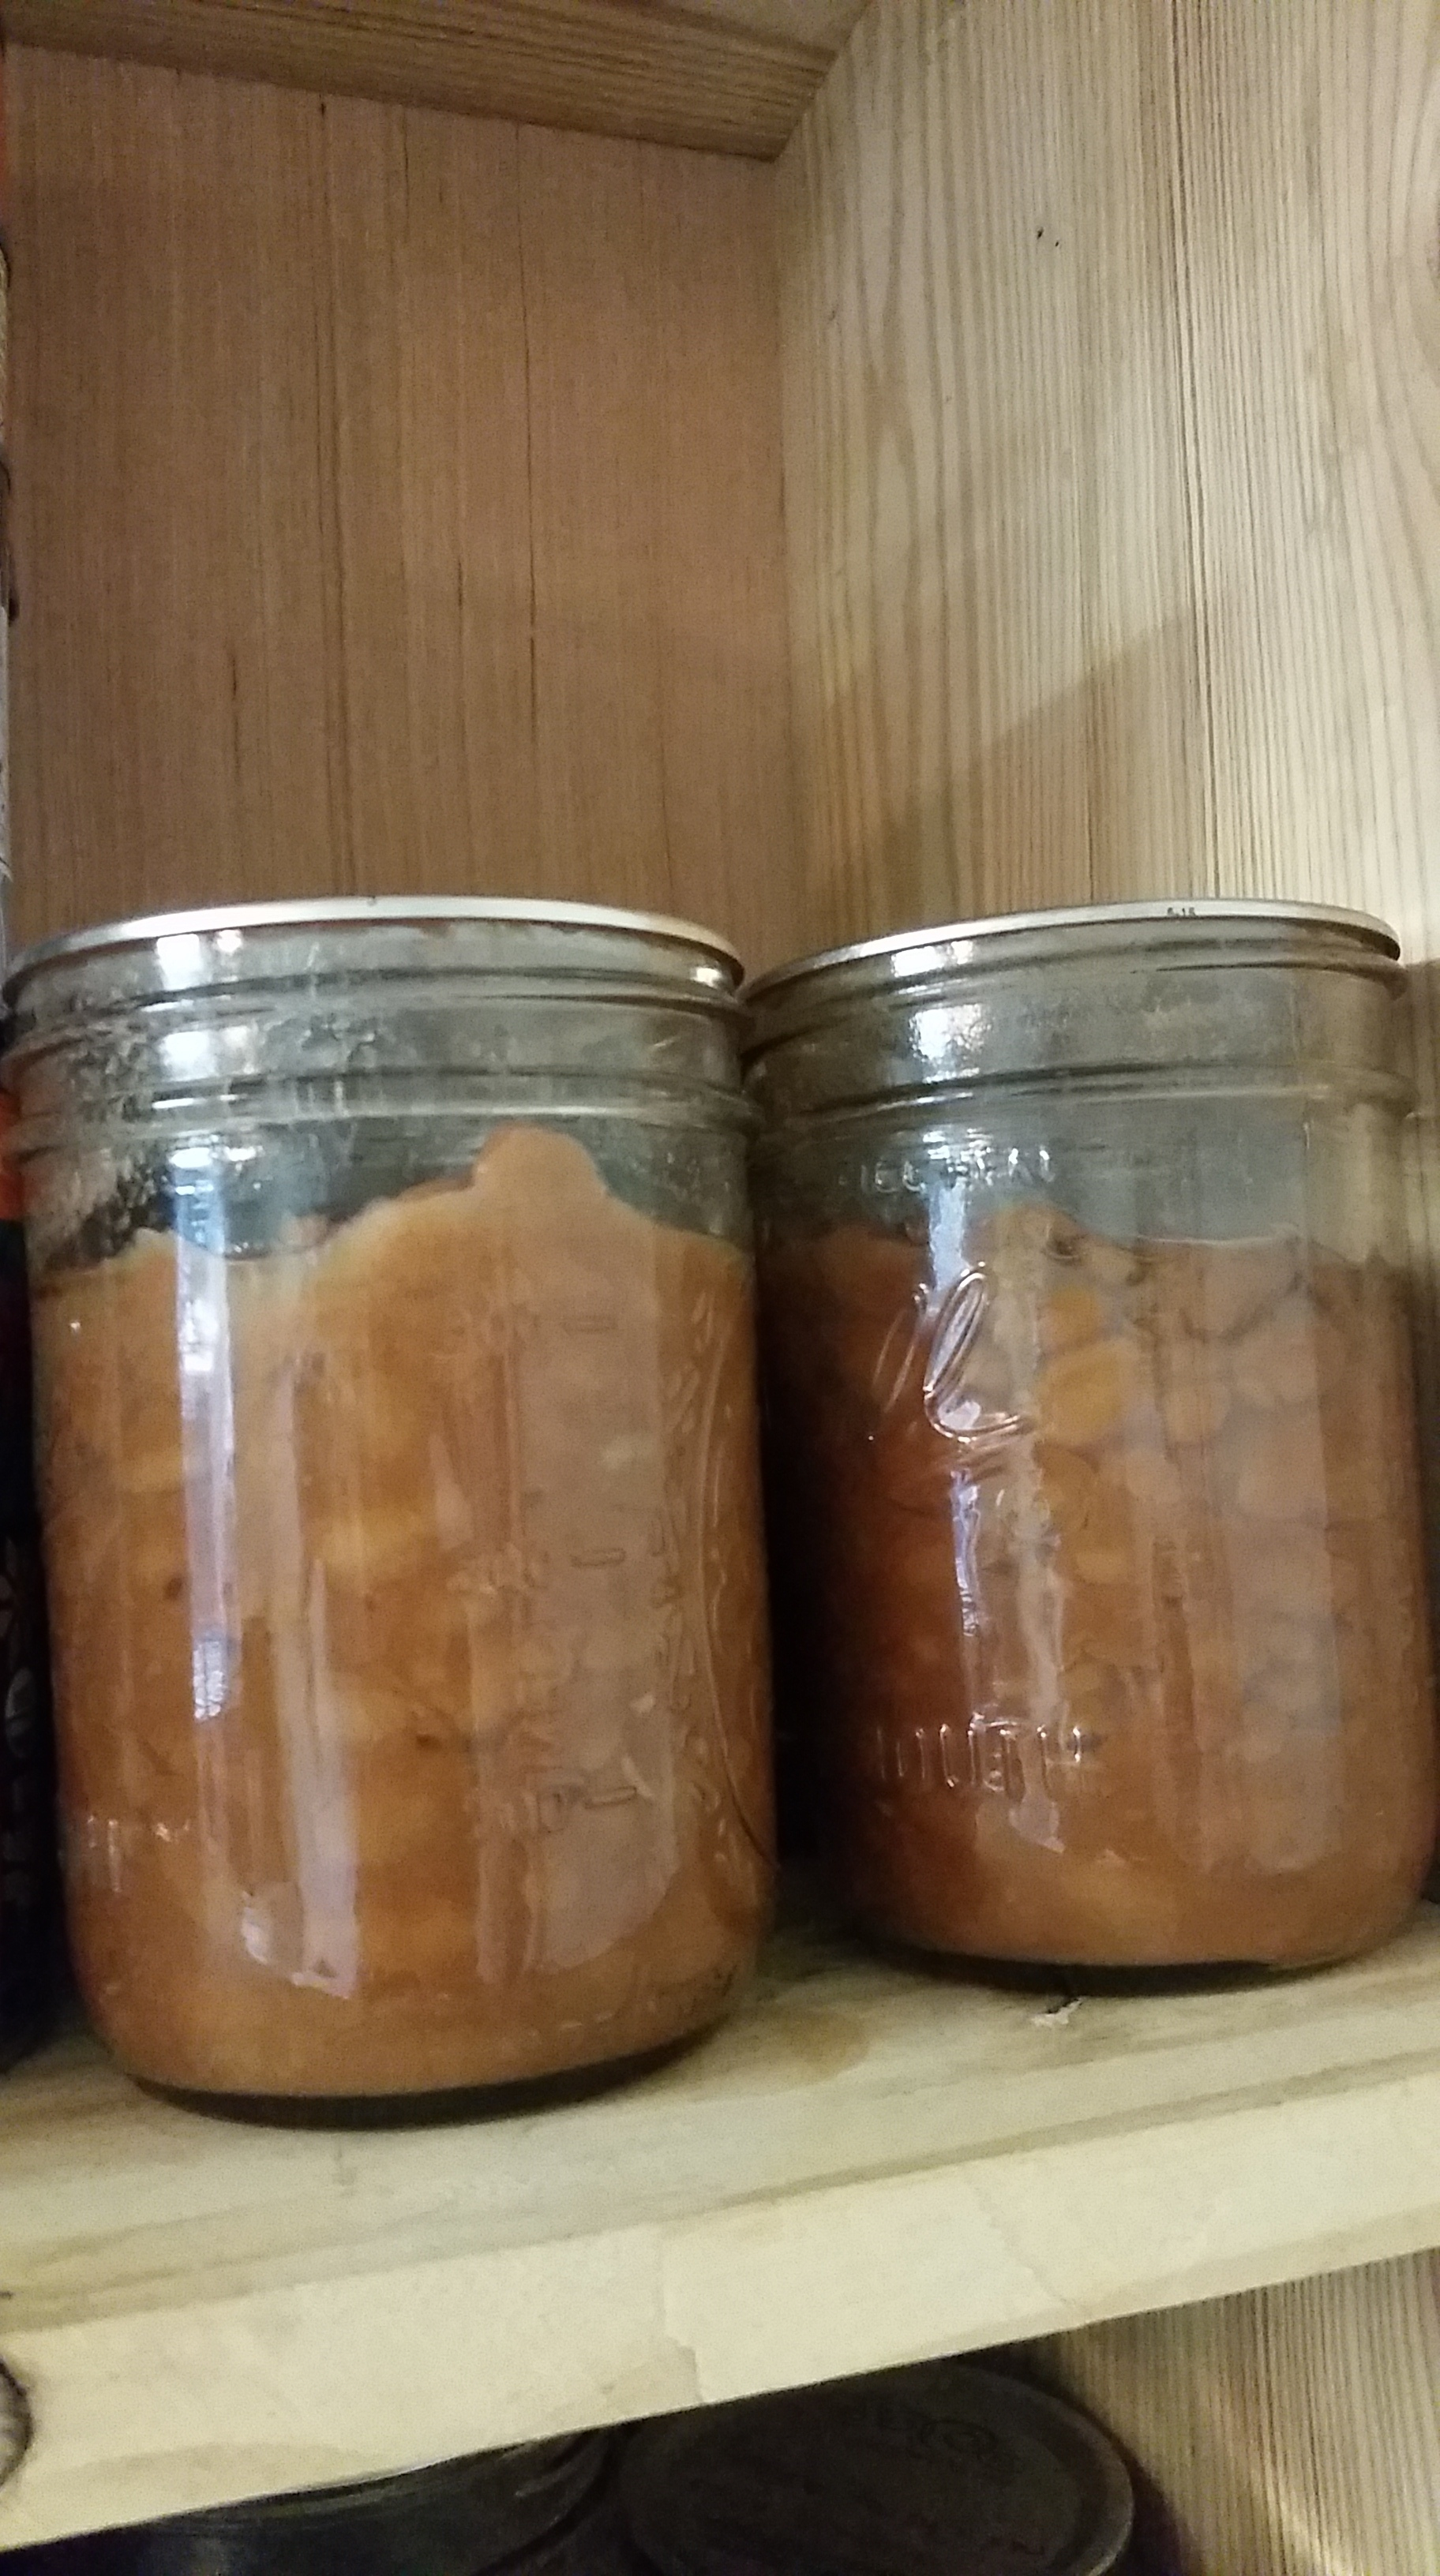 Homemade Refried Beans (and pressure canning them!)